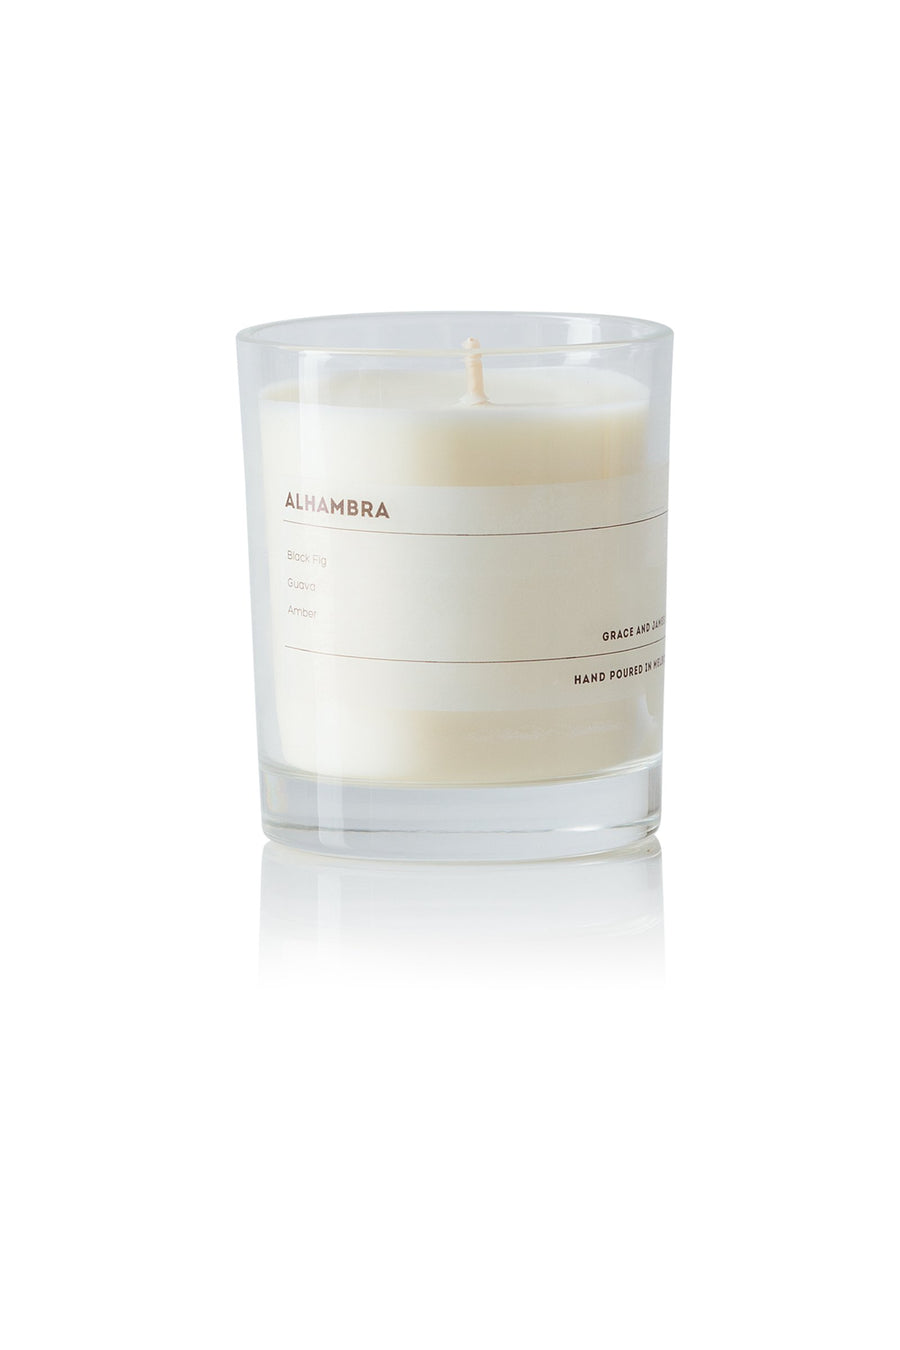 Alhambra Candle - Grace & James